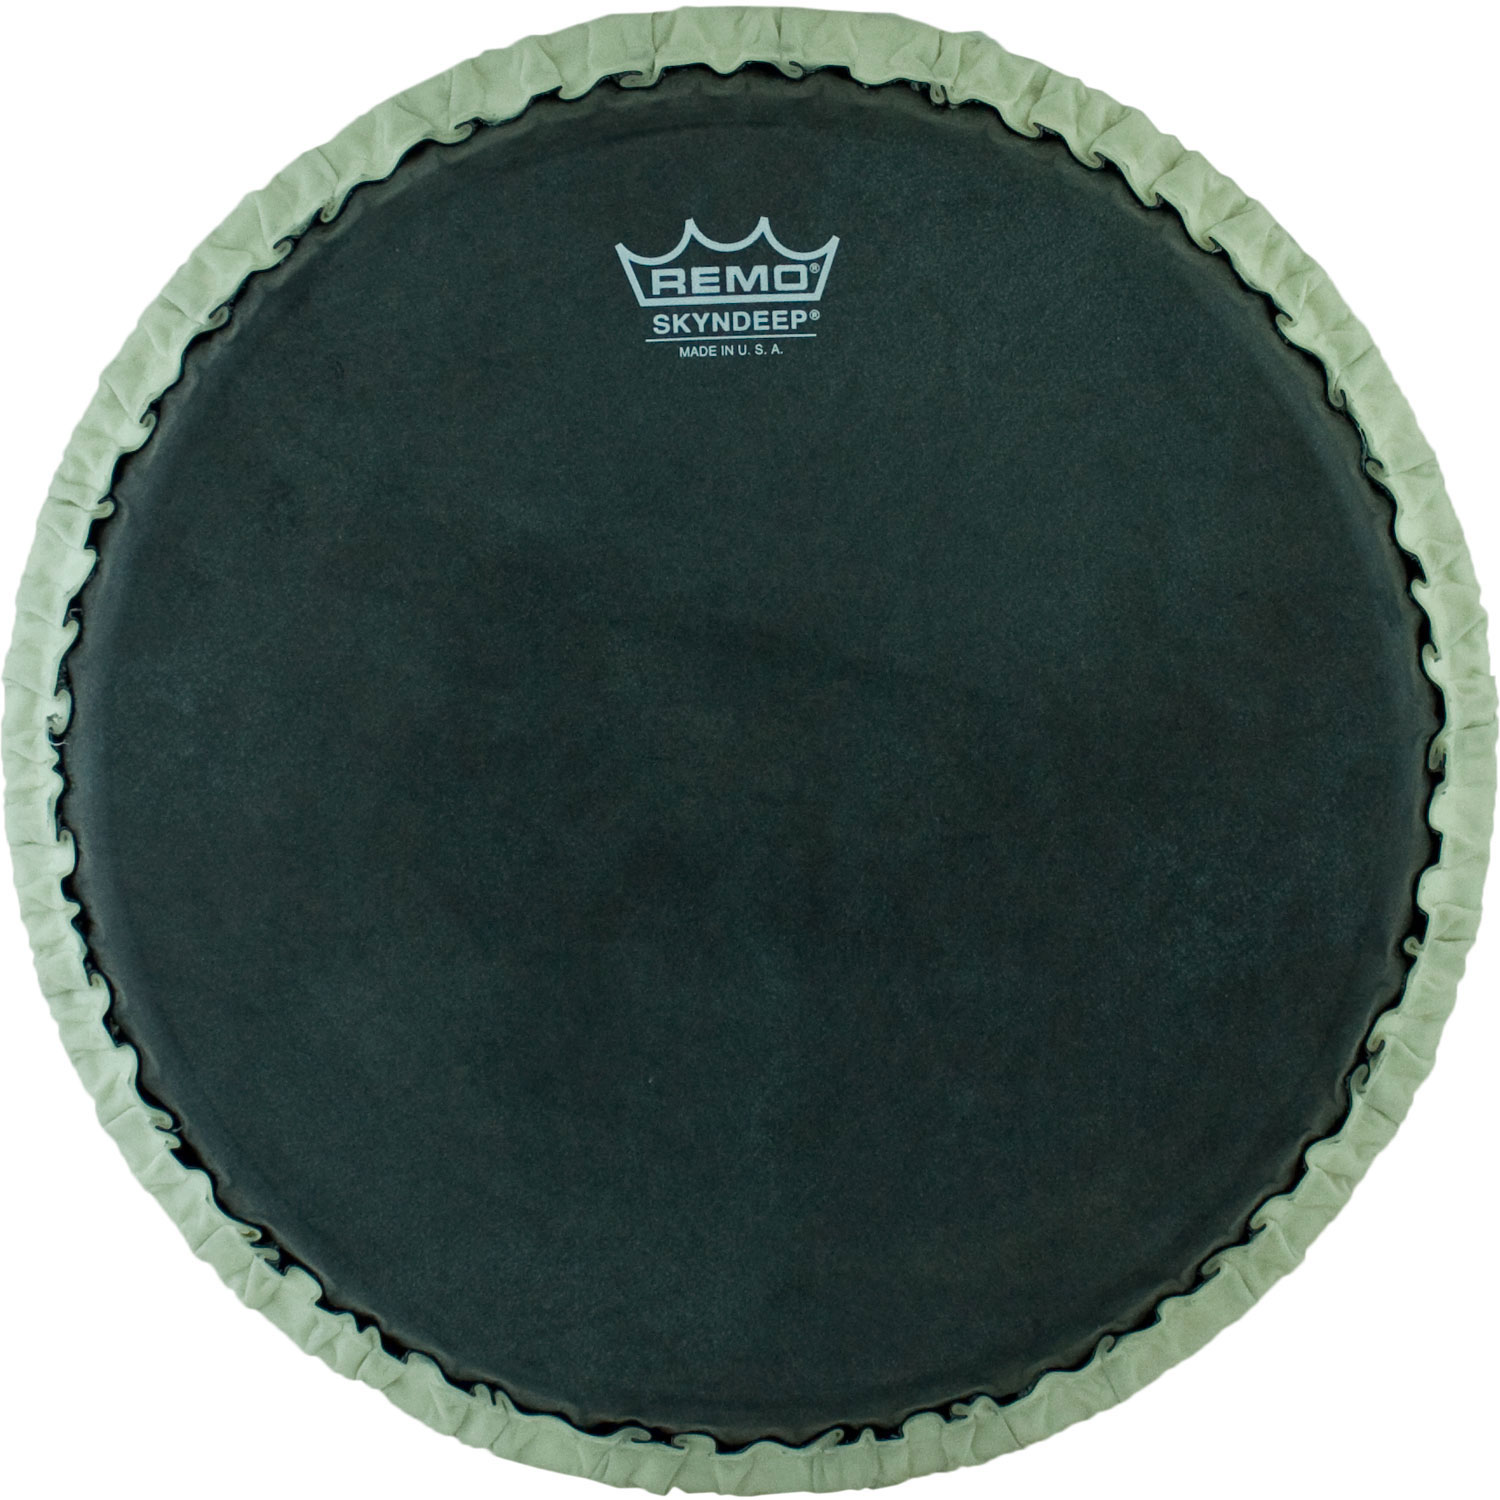 "Remo 11.06"" Tucked Skyndeep Conga Drum Head with Black Calfskin Graphic"